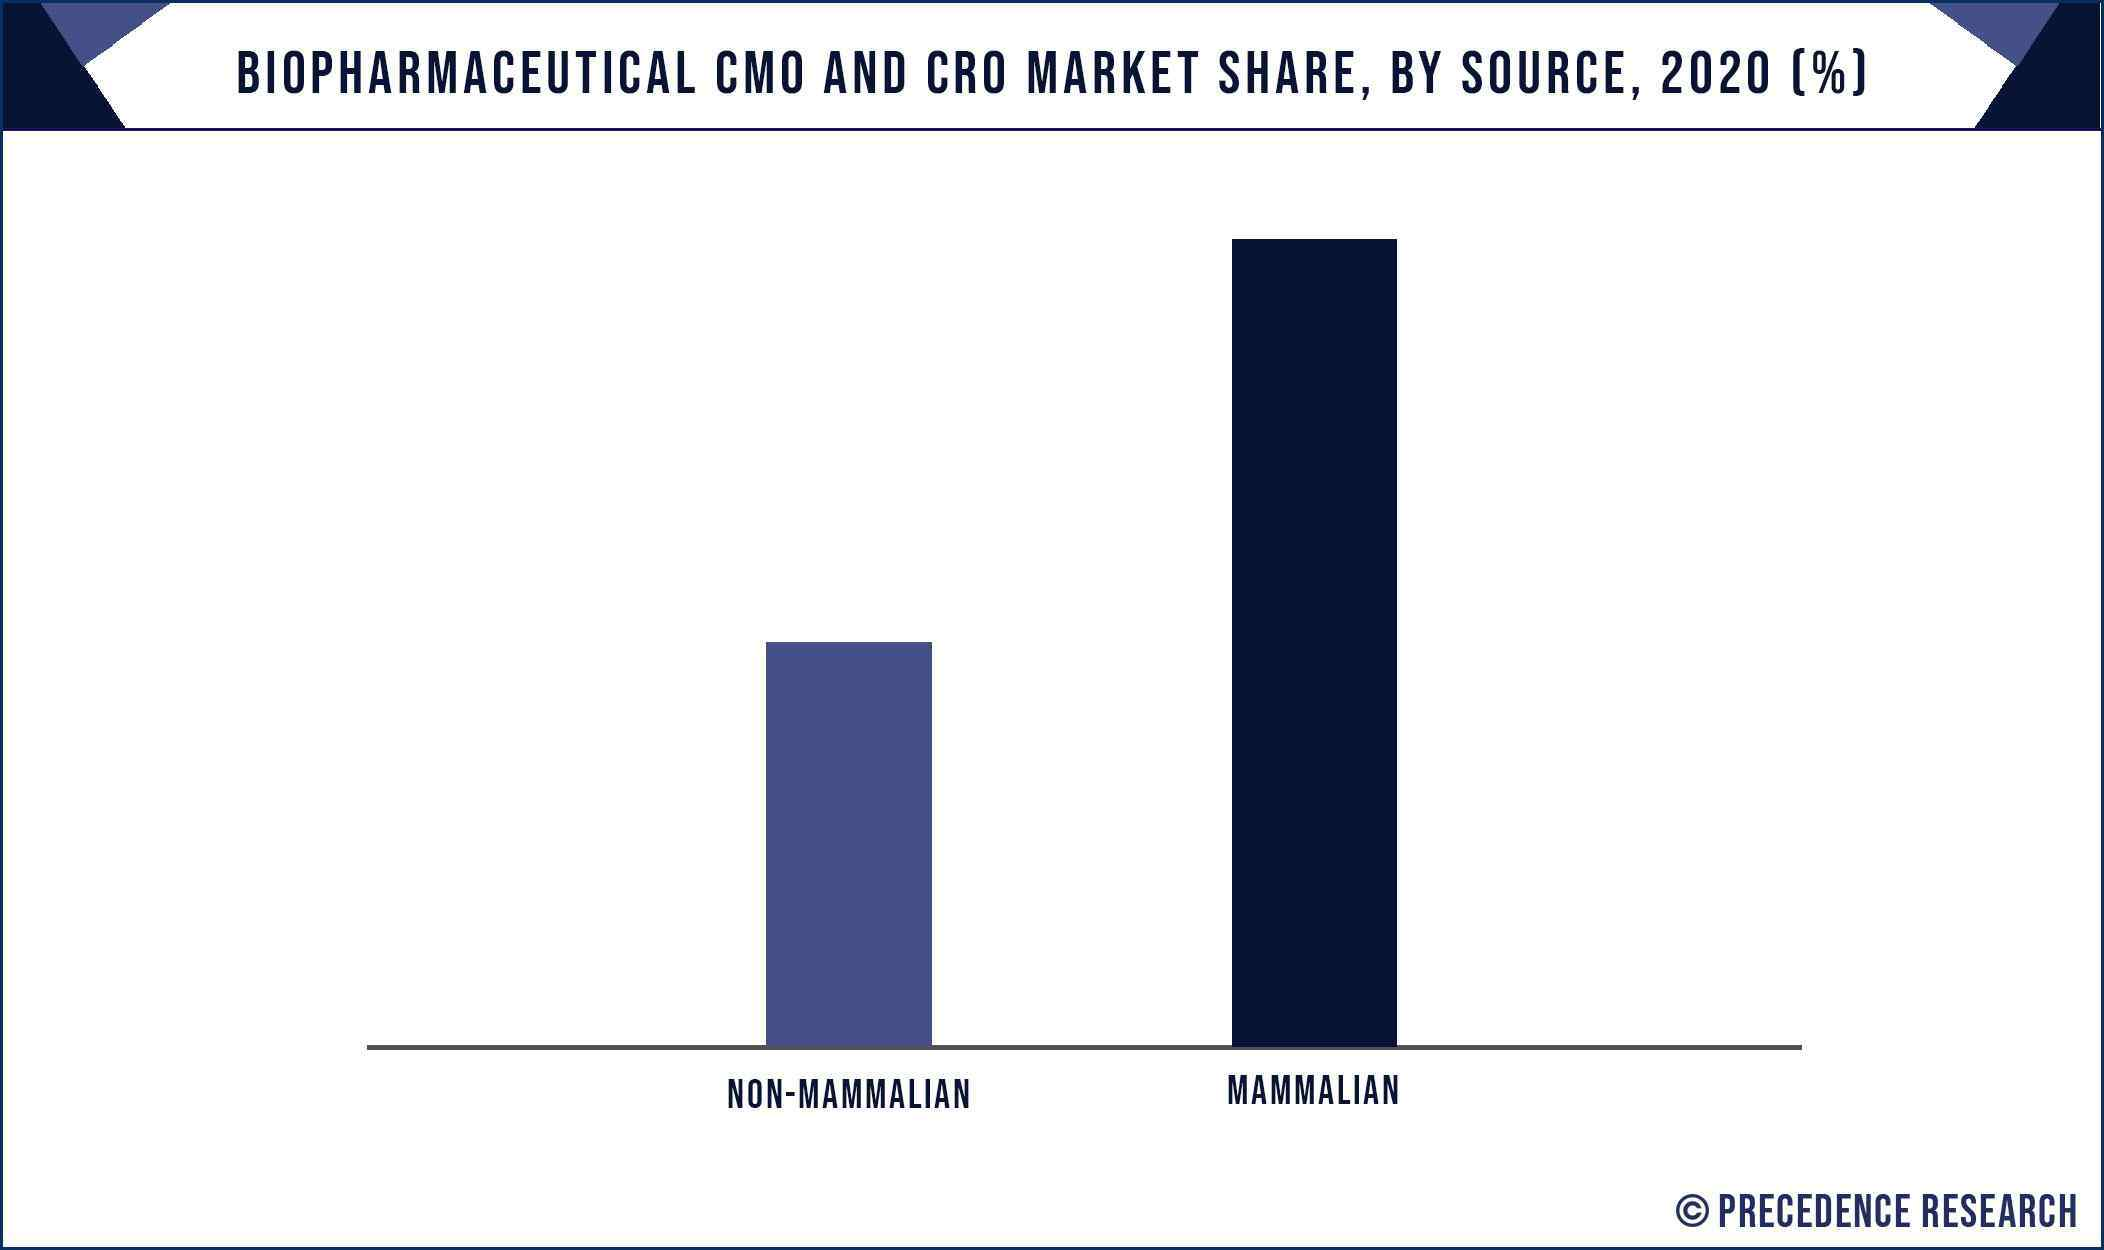 Biopharmaceutical CMO and CRO Market Share, By Source, 2020 (%)